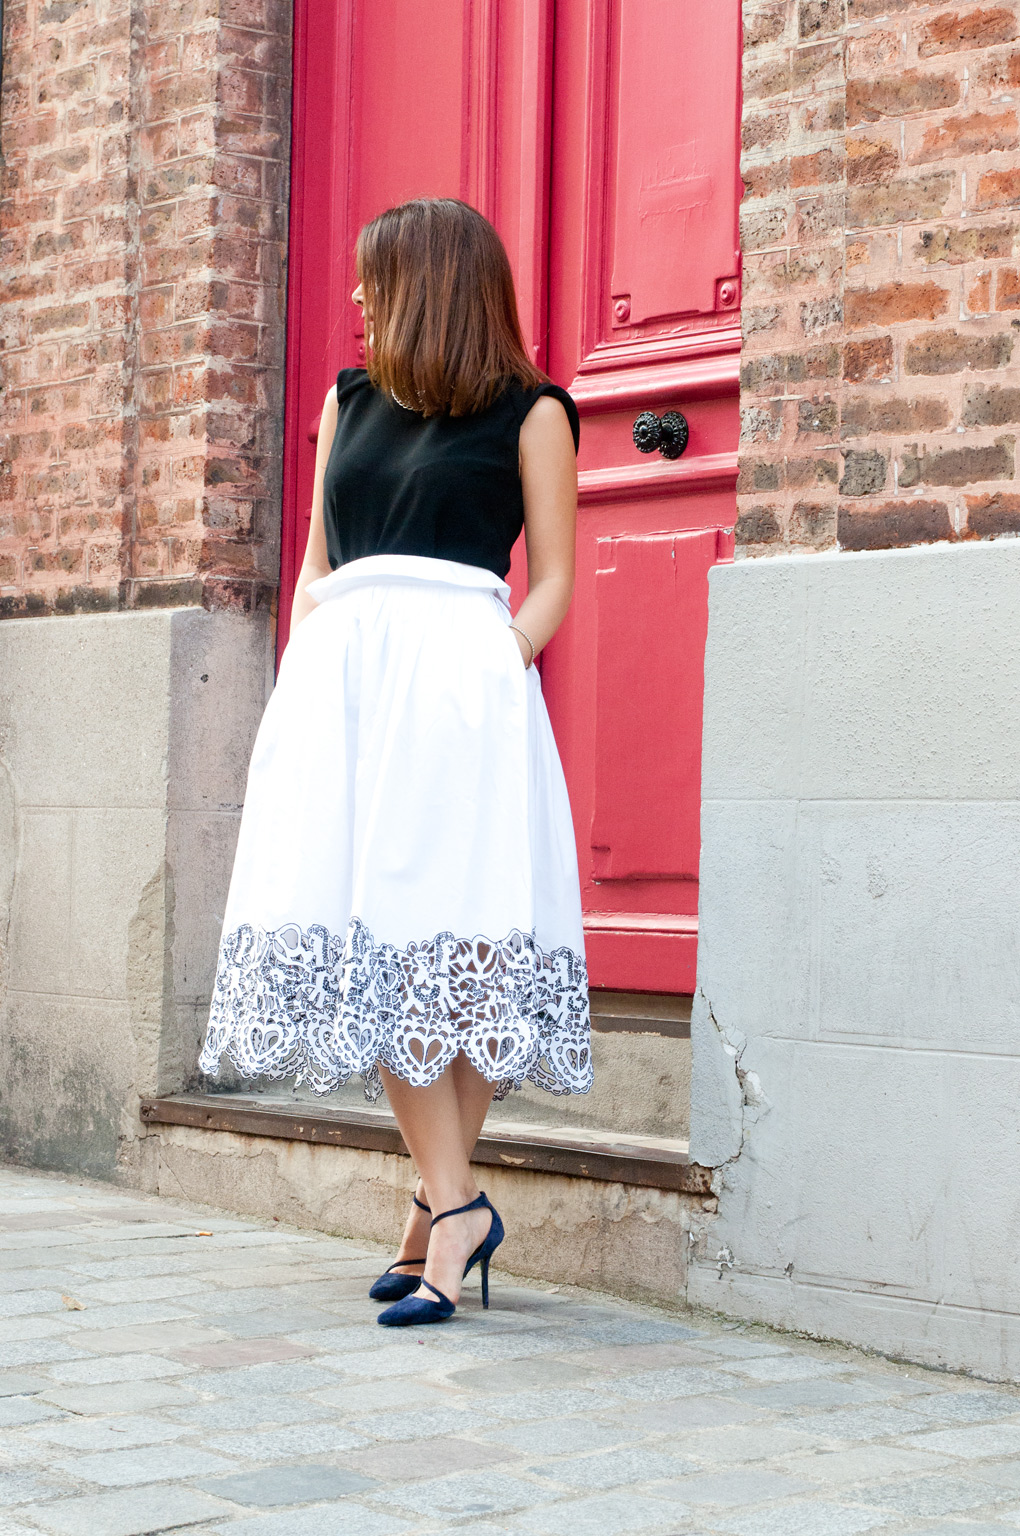 Lyla_Loves_Fashion_Meadham_kirchhoff_Skirt_Roger_Vivier_Heels_5845